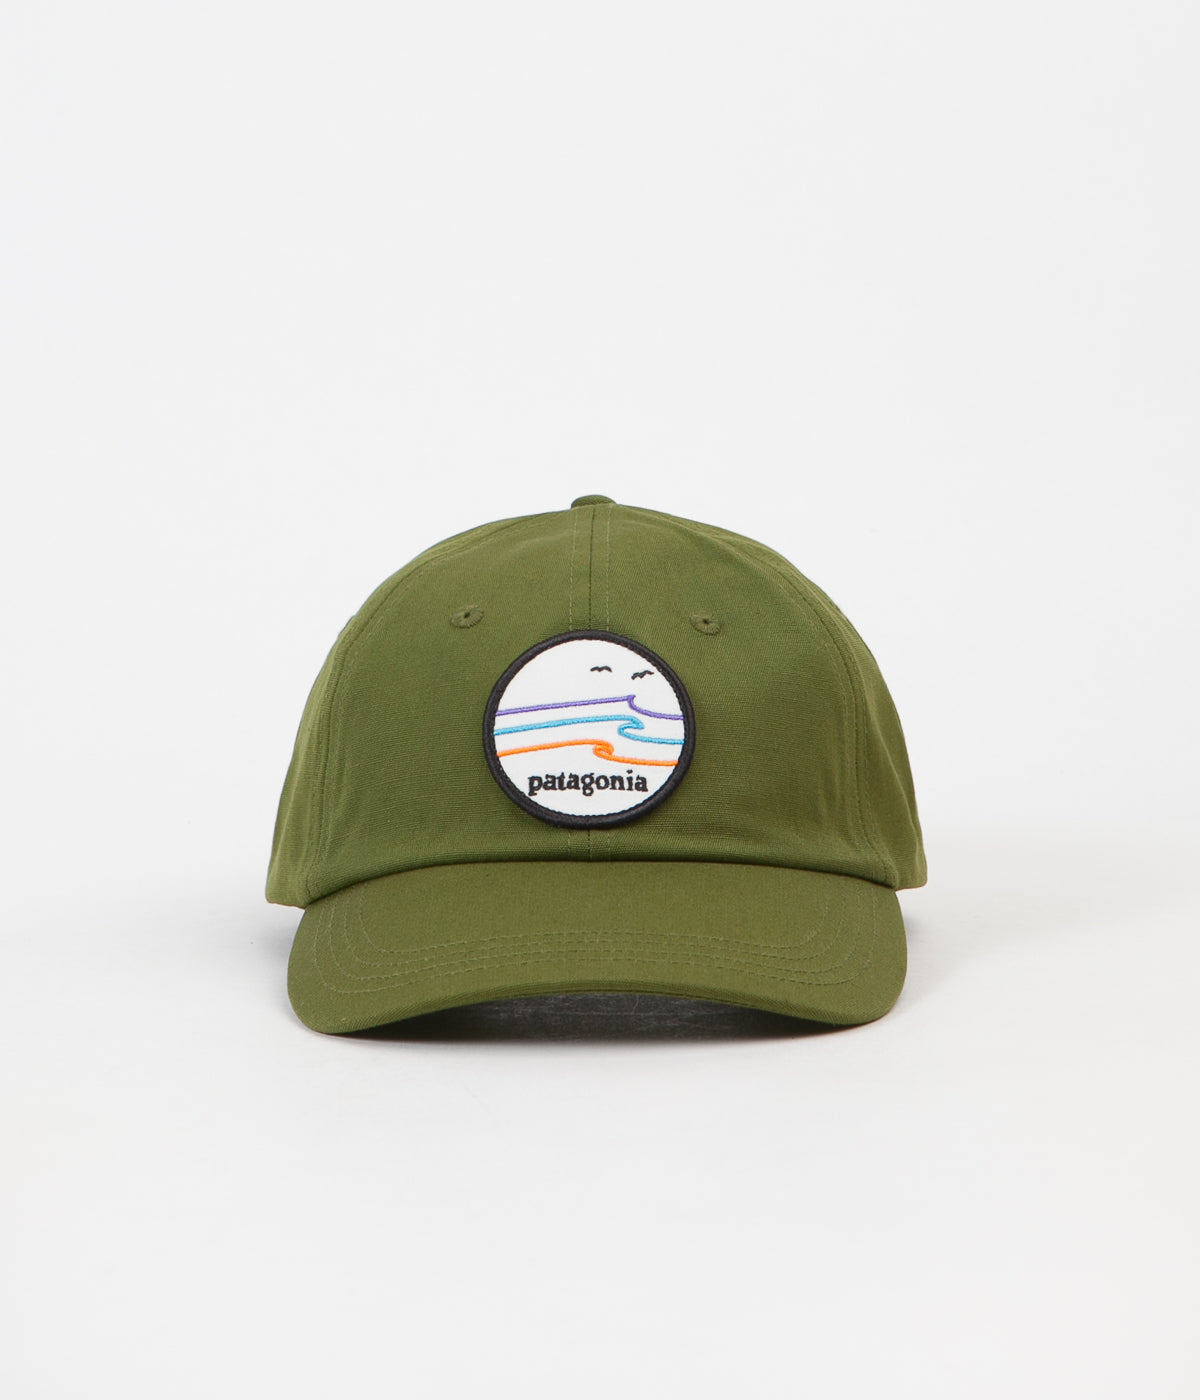 ... Patagonia Tide Ride Trad Cap - Sprouted Green ... ad26ffdf6e3